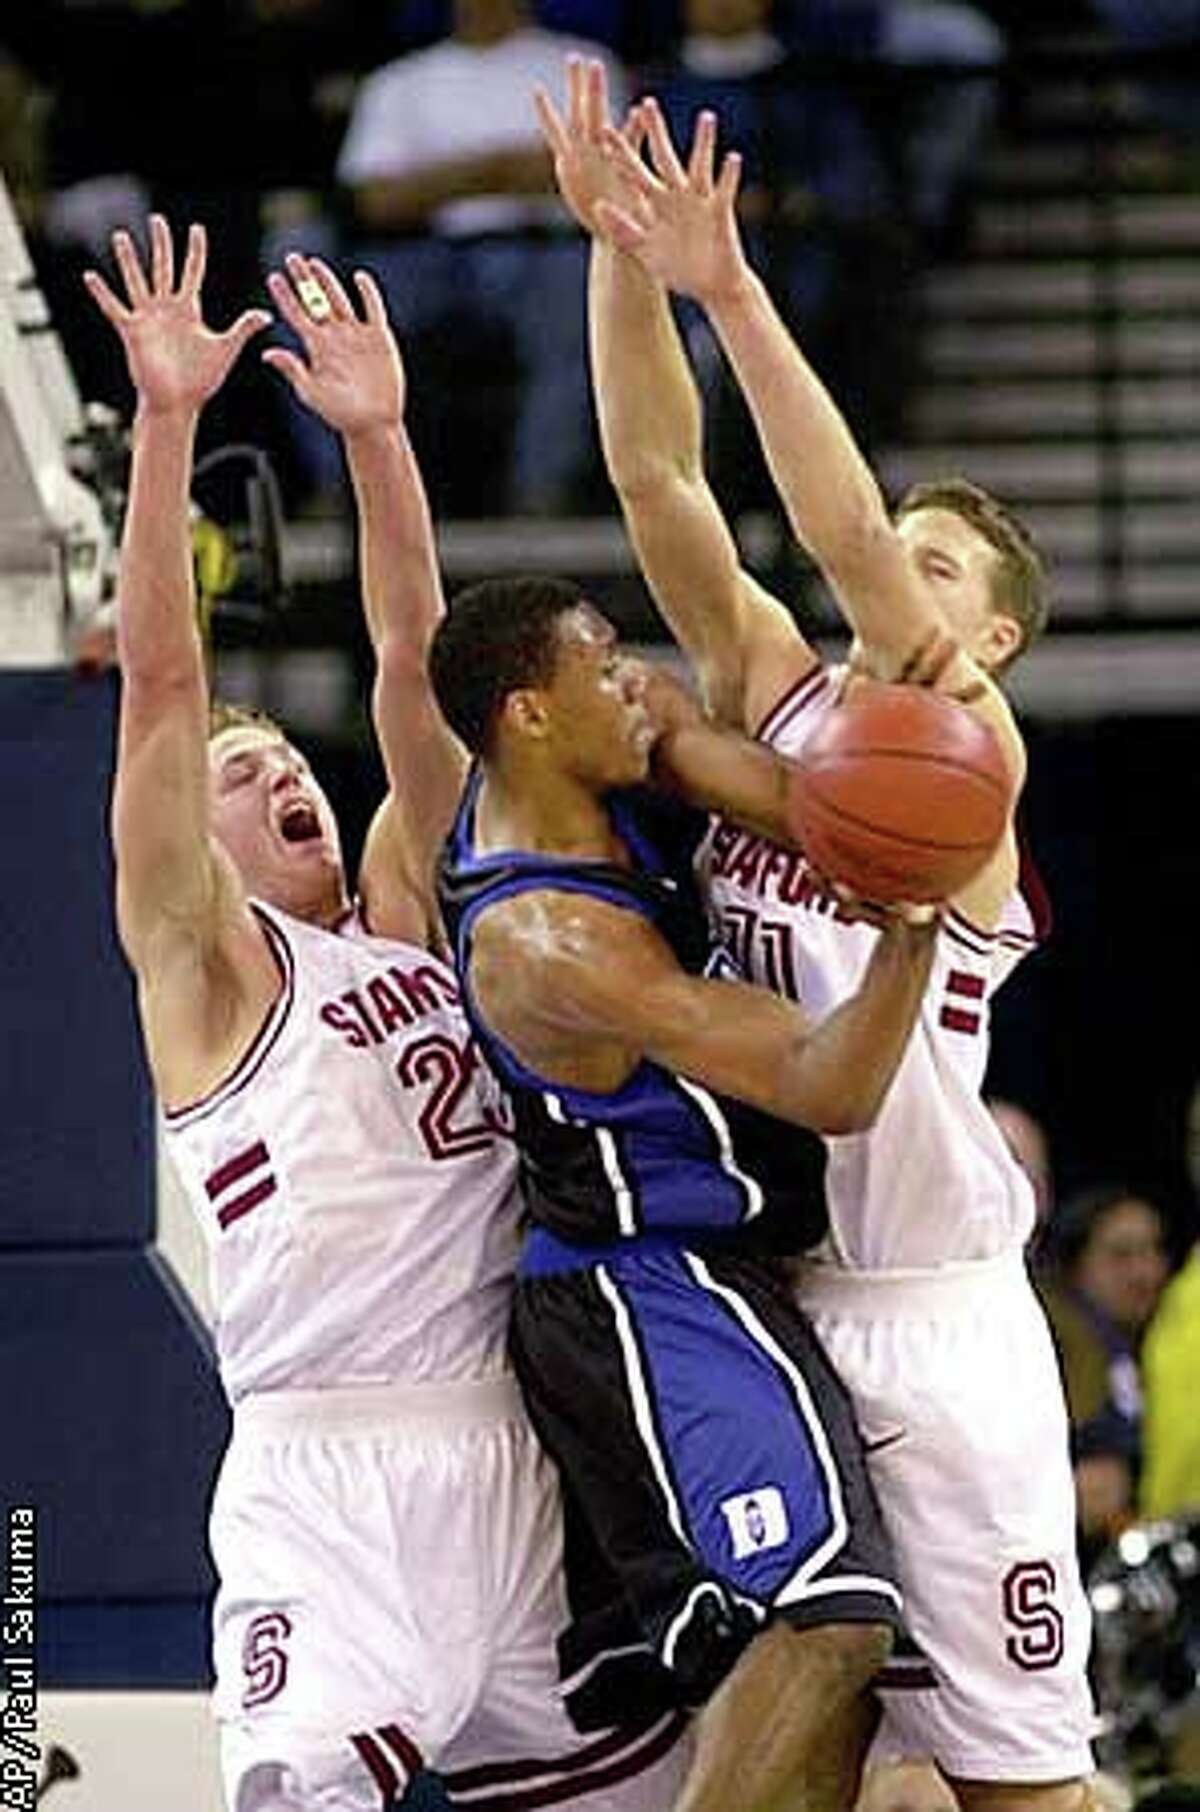 Duke guard Nate James is closely guarded by Stanford forward Casey Jacobsen, left, and center Curtis Borchardt, right, during the first half of the Pete Newell Challenge in Oakland. Associated Press photo by Paul Sakuma